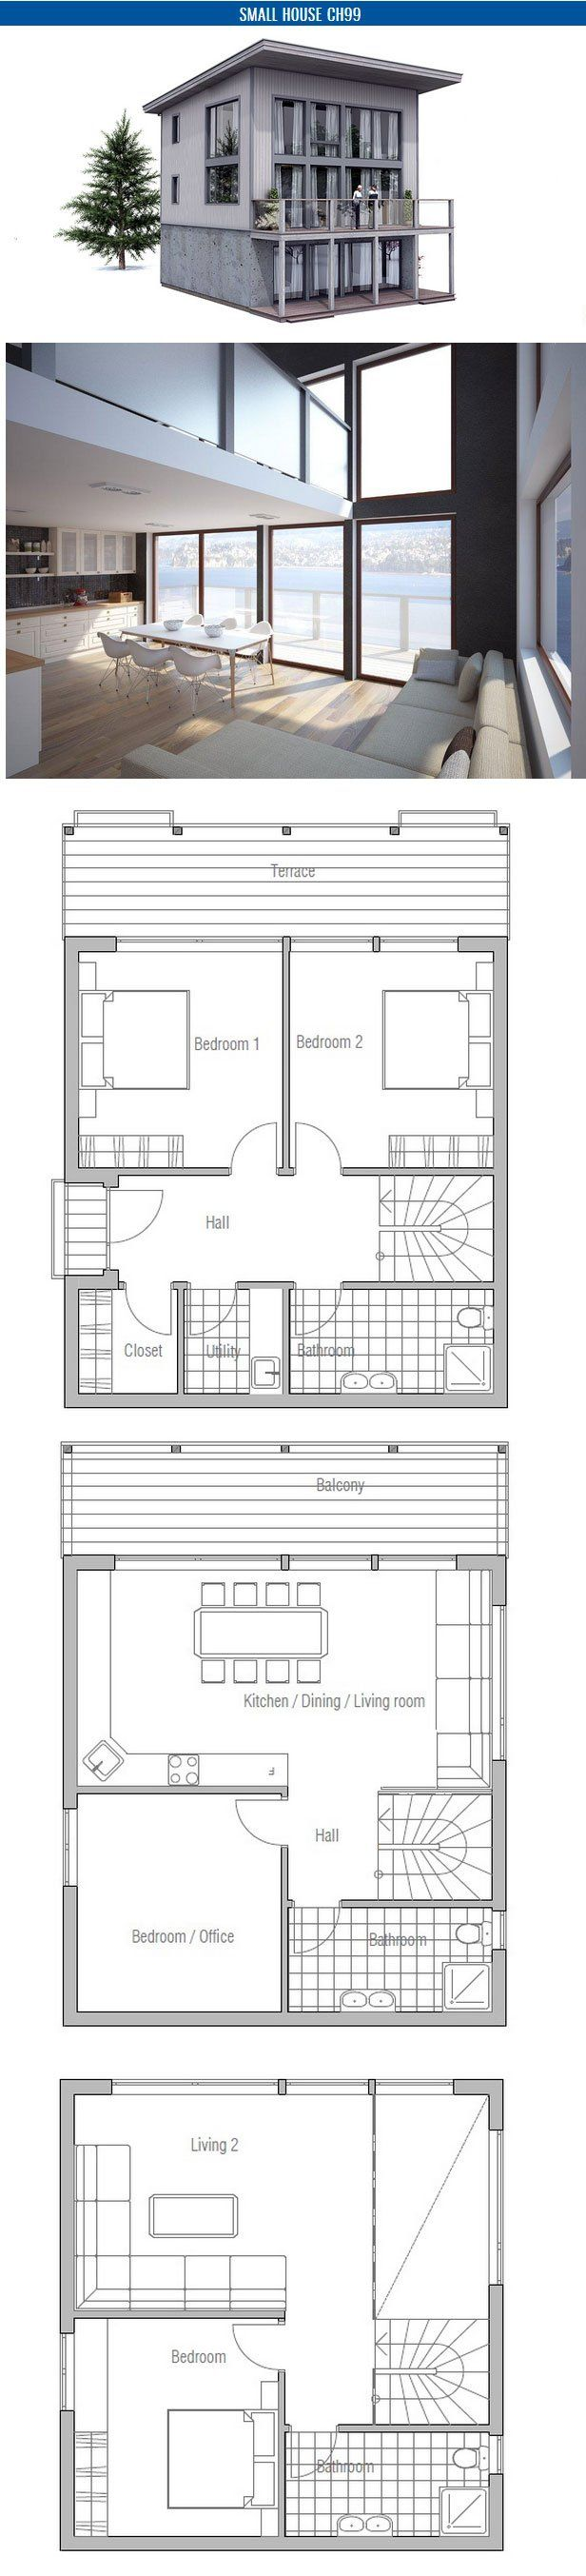 c4d6ea06e20bc921804c2cb0e28106ed modern houses small houses 156 best beach house narrow lot plans images on pinterest,Beach House Plans Narrow Lot